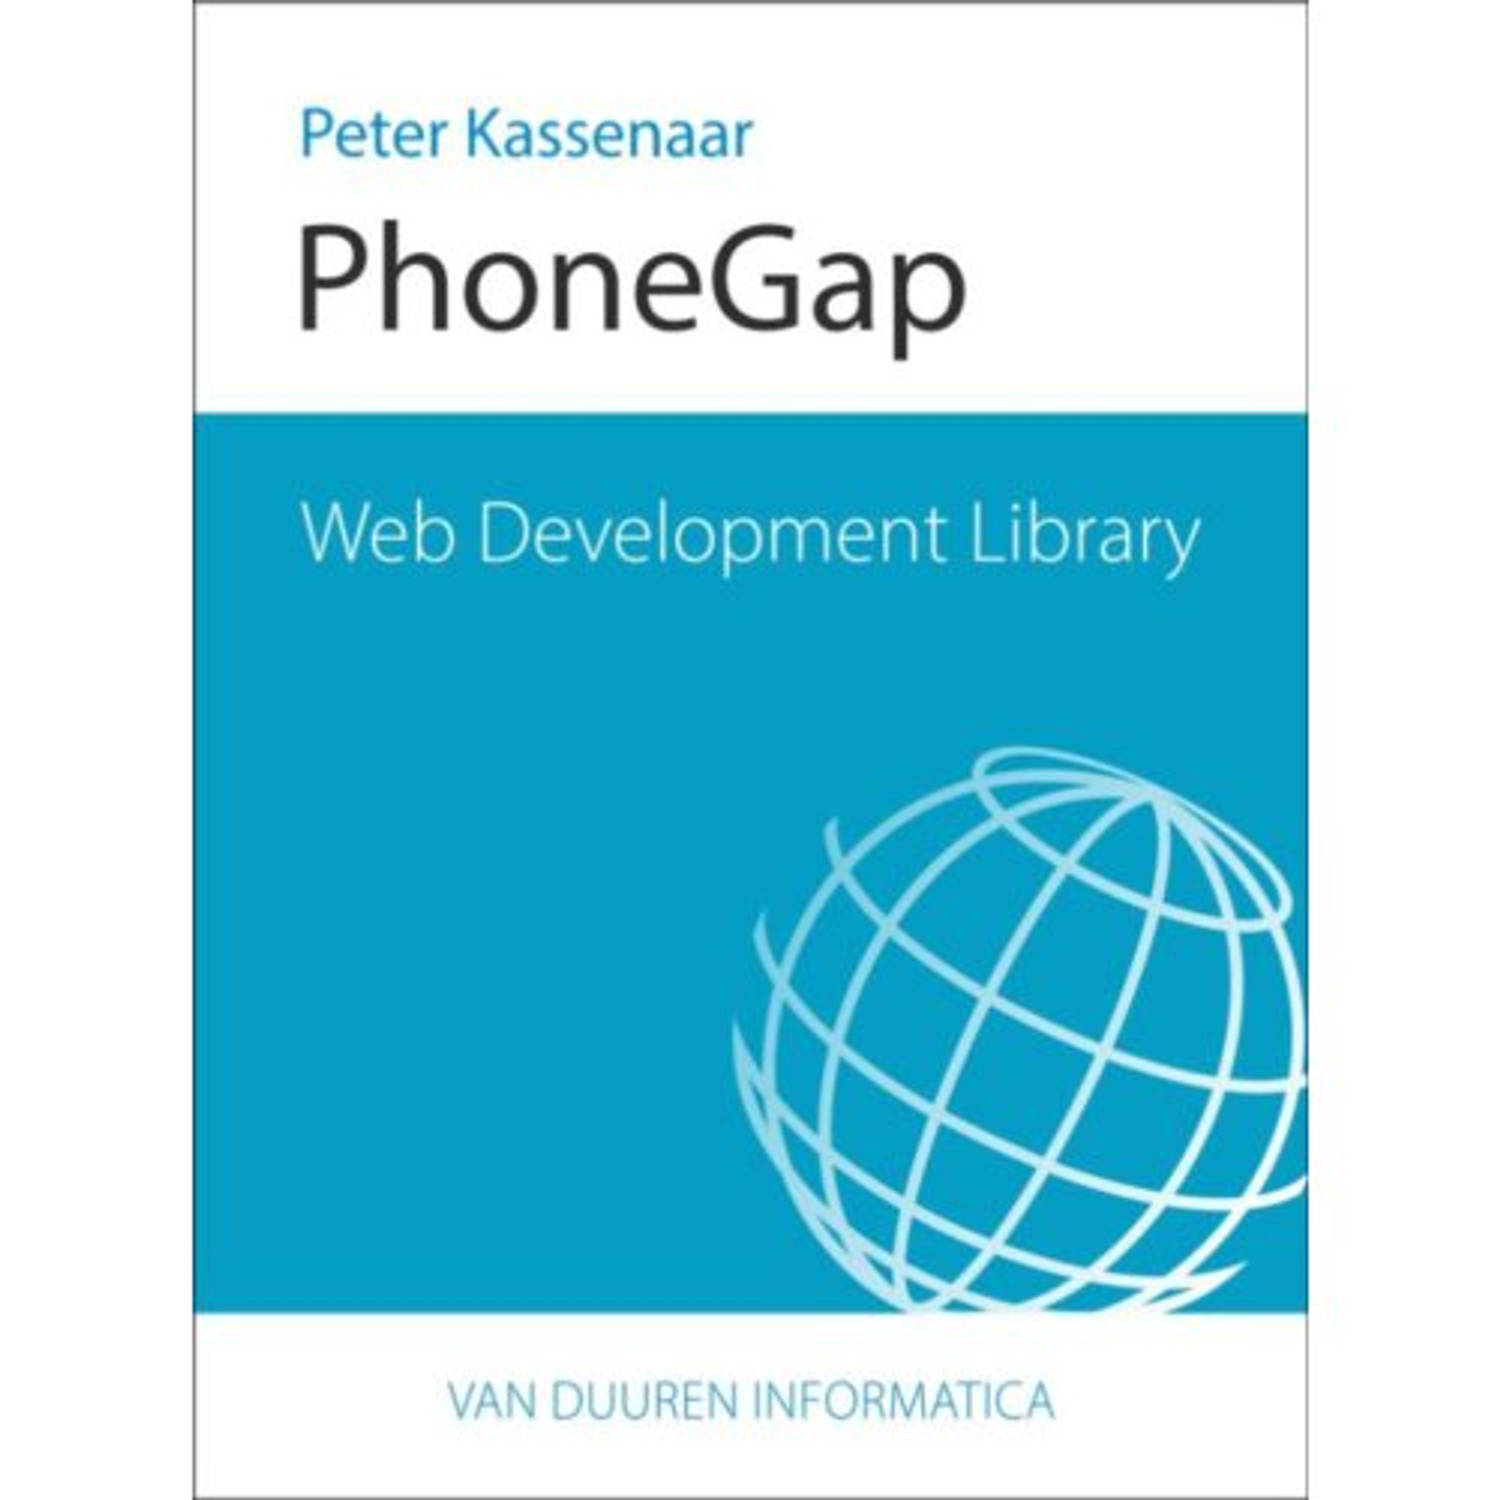 PhoneGap - Web Development Library